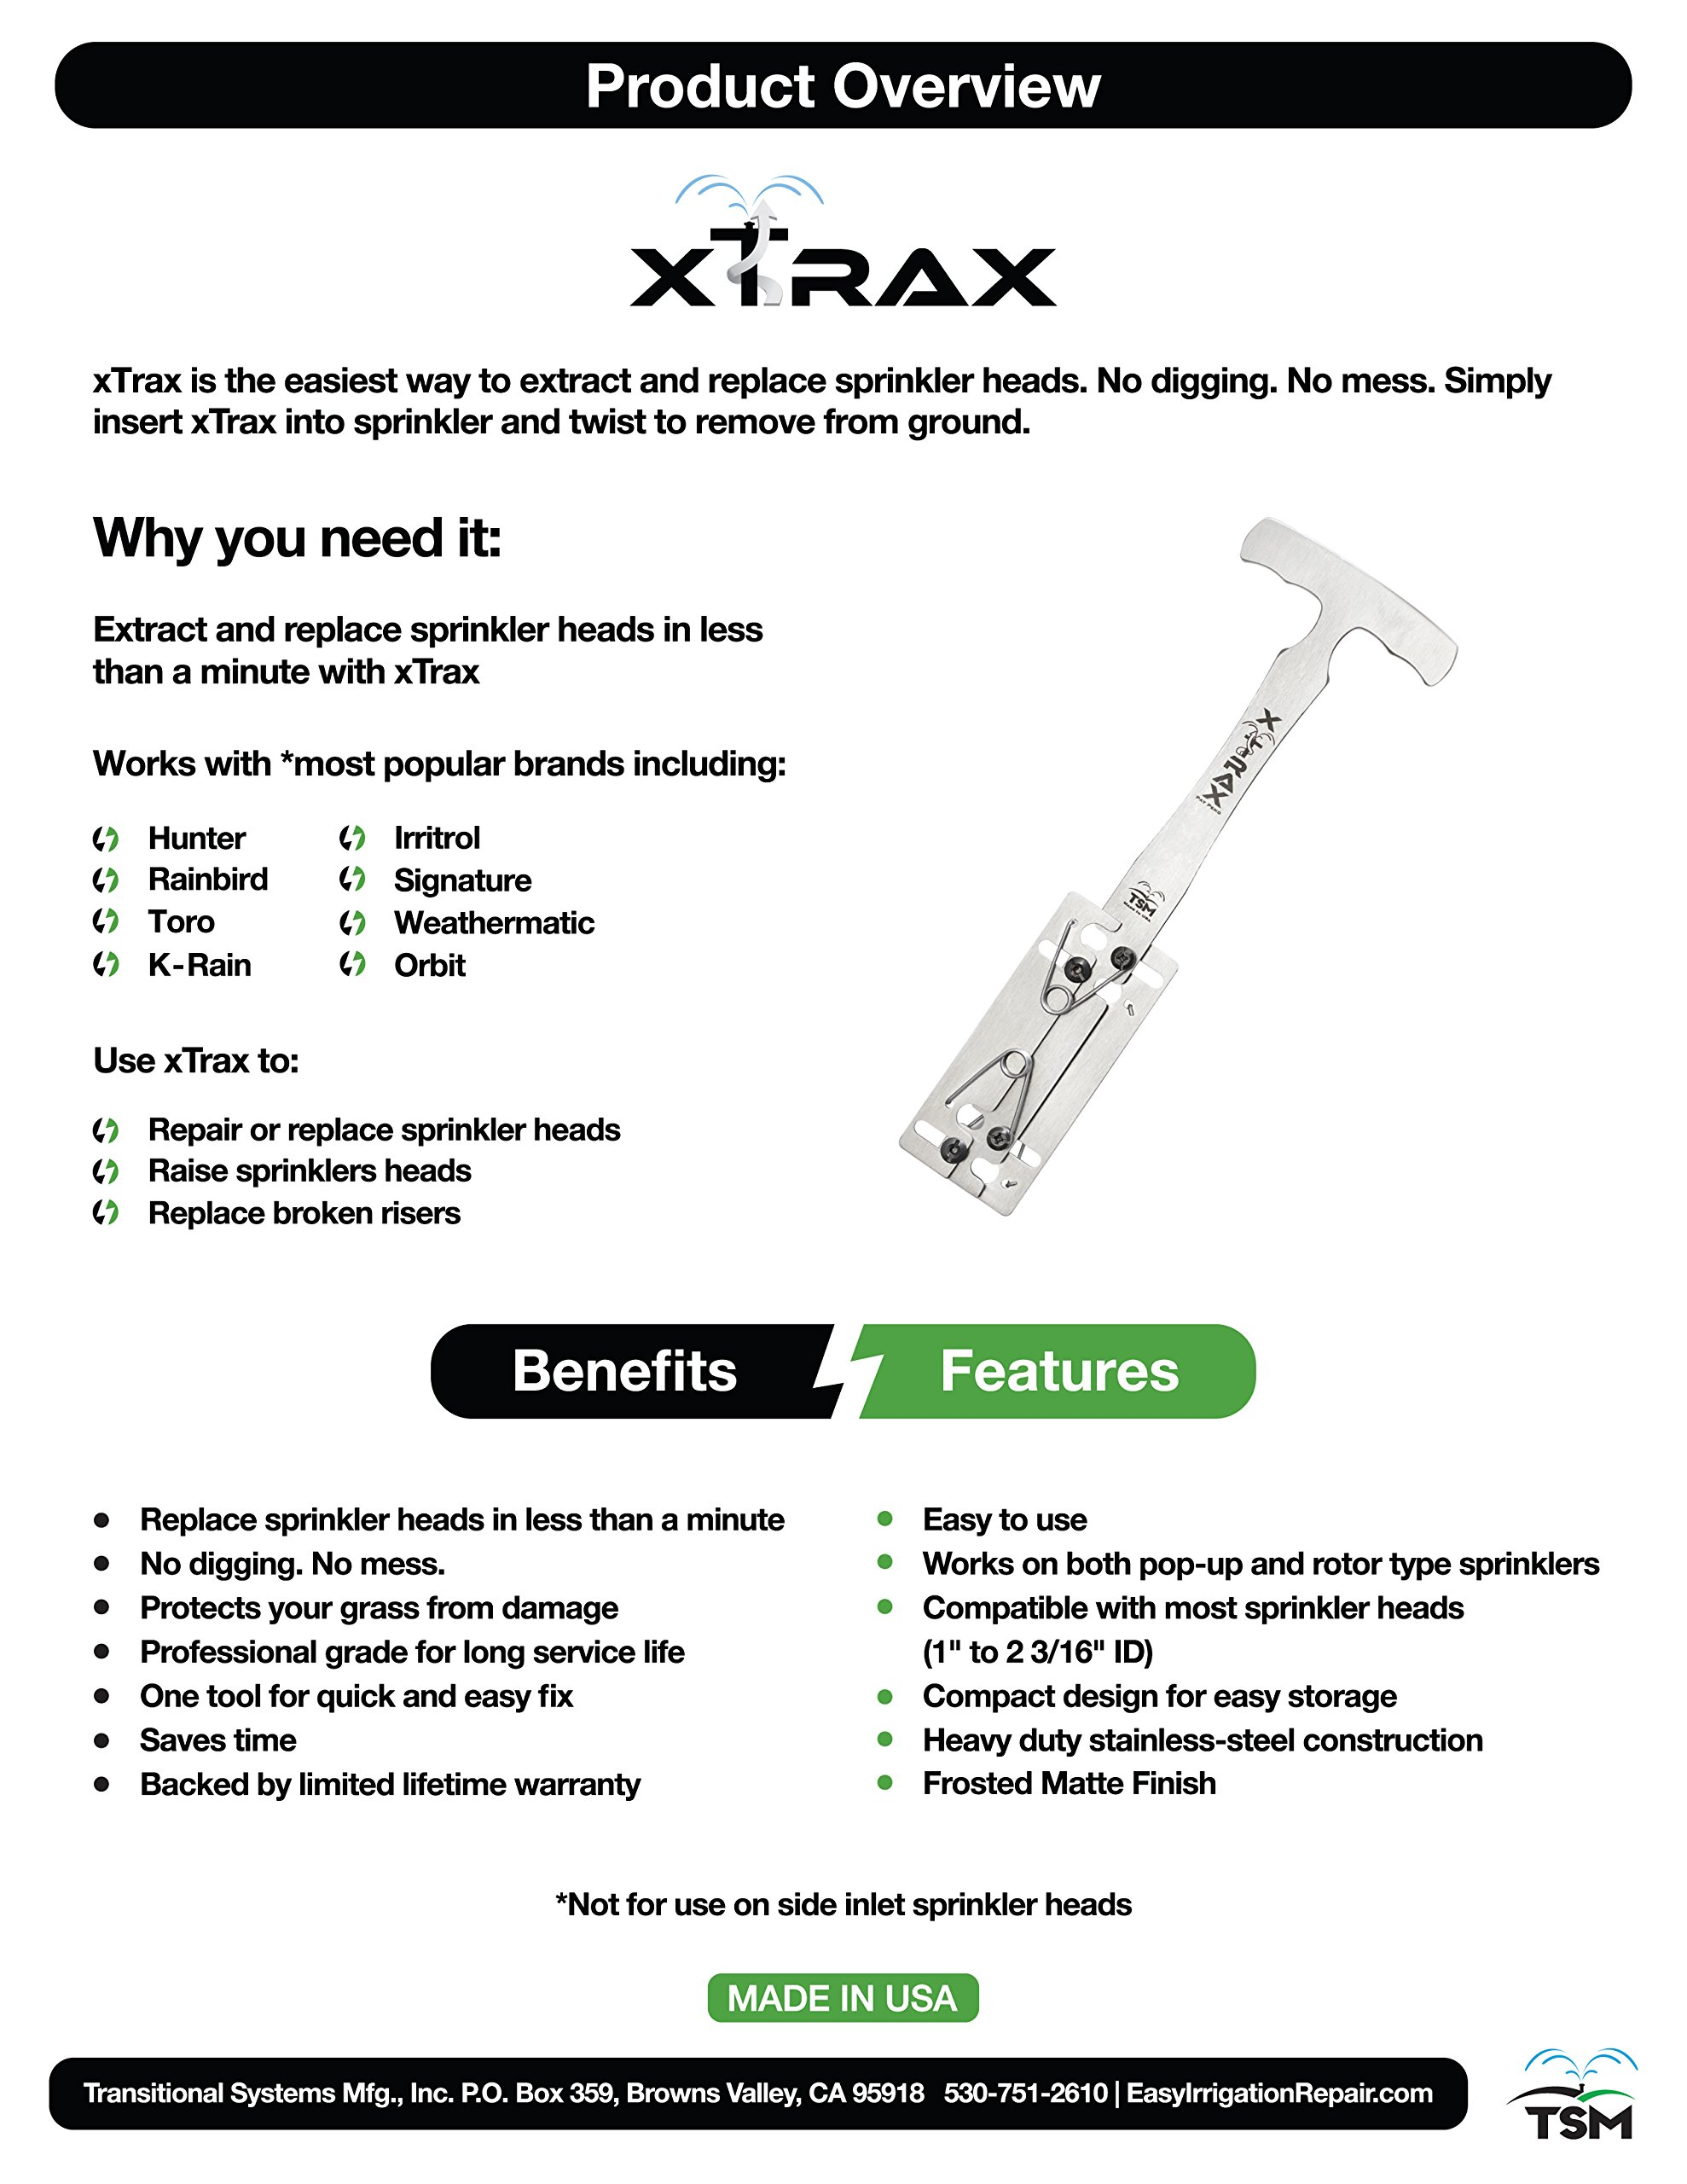 xTrax - Sprinkler Removal and Repair Made Easy - Extract and Replace Sprinkler Heads in Less Than a Minute